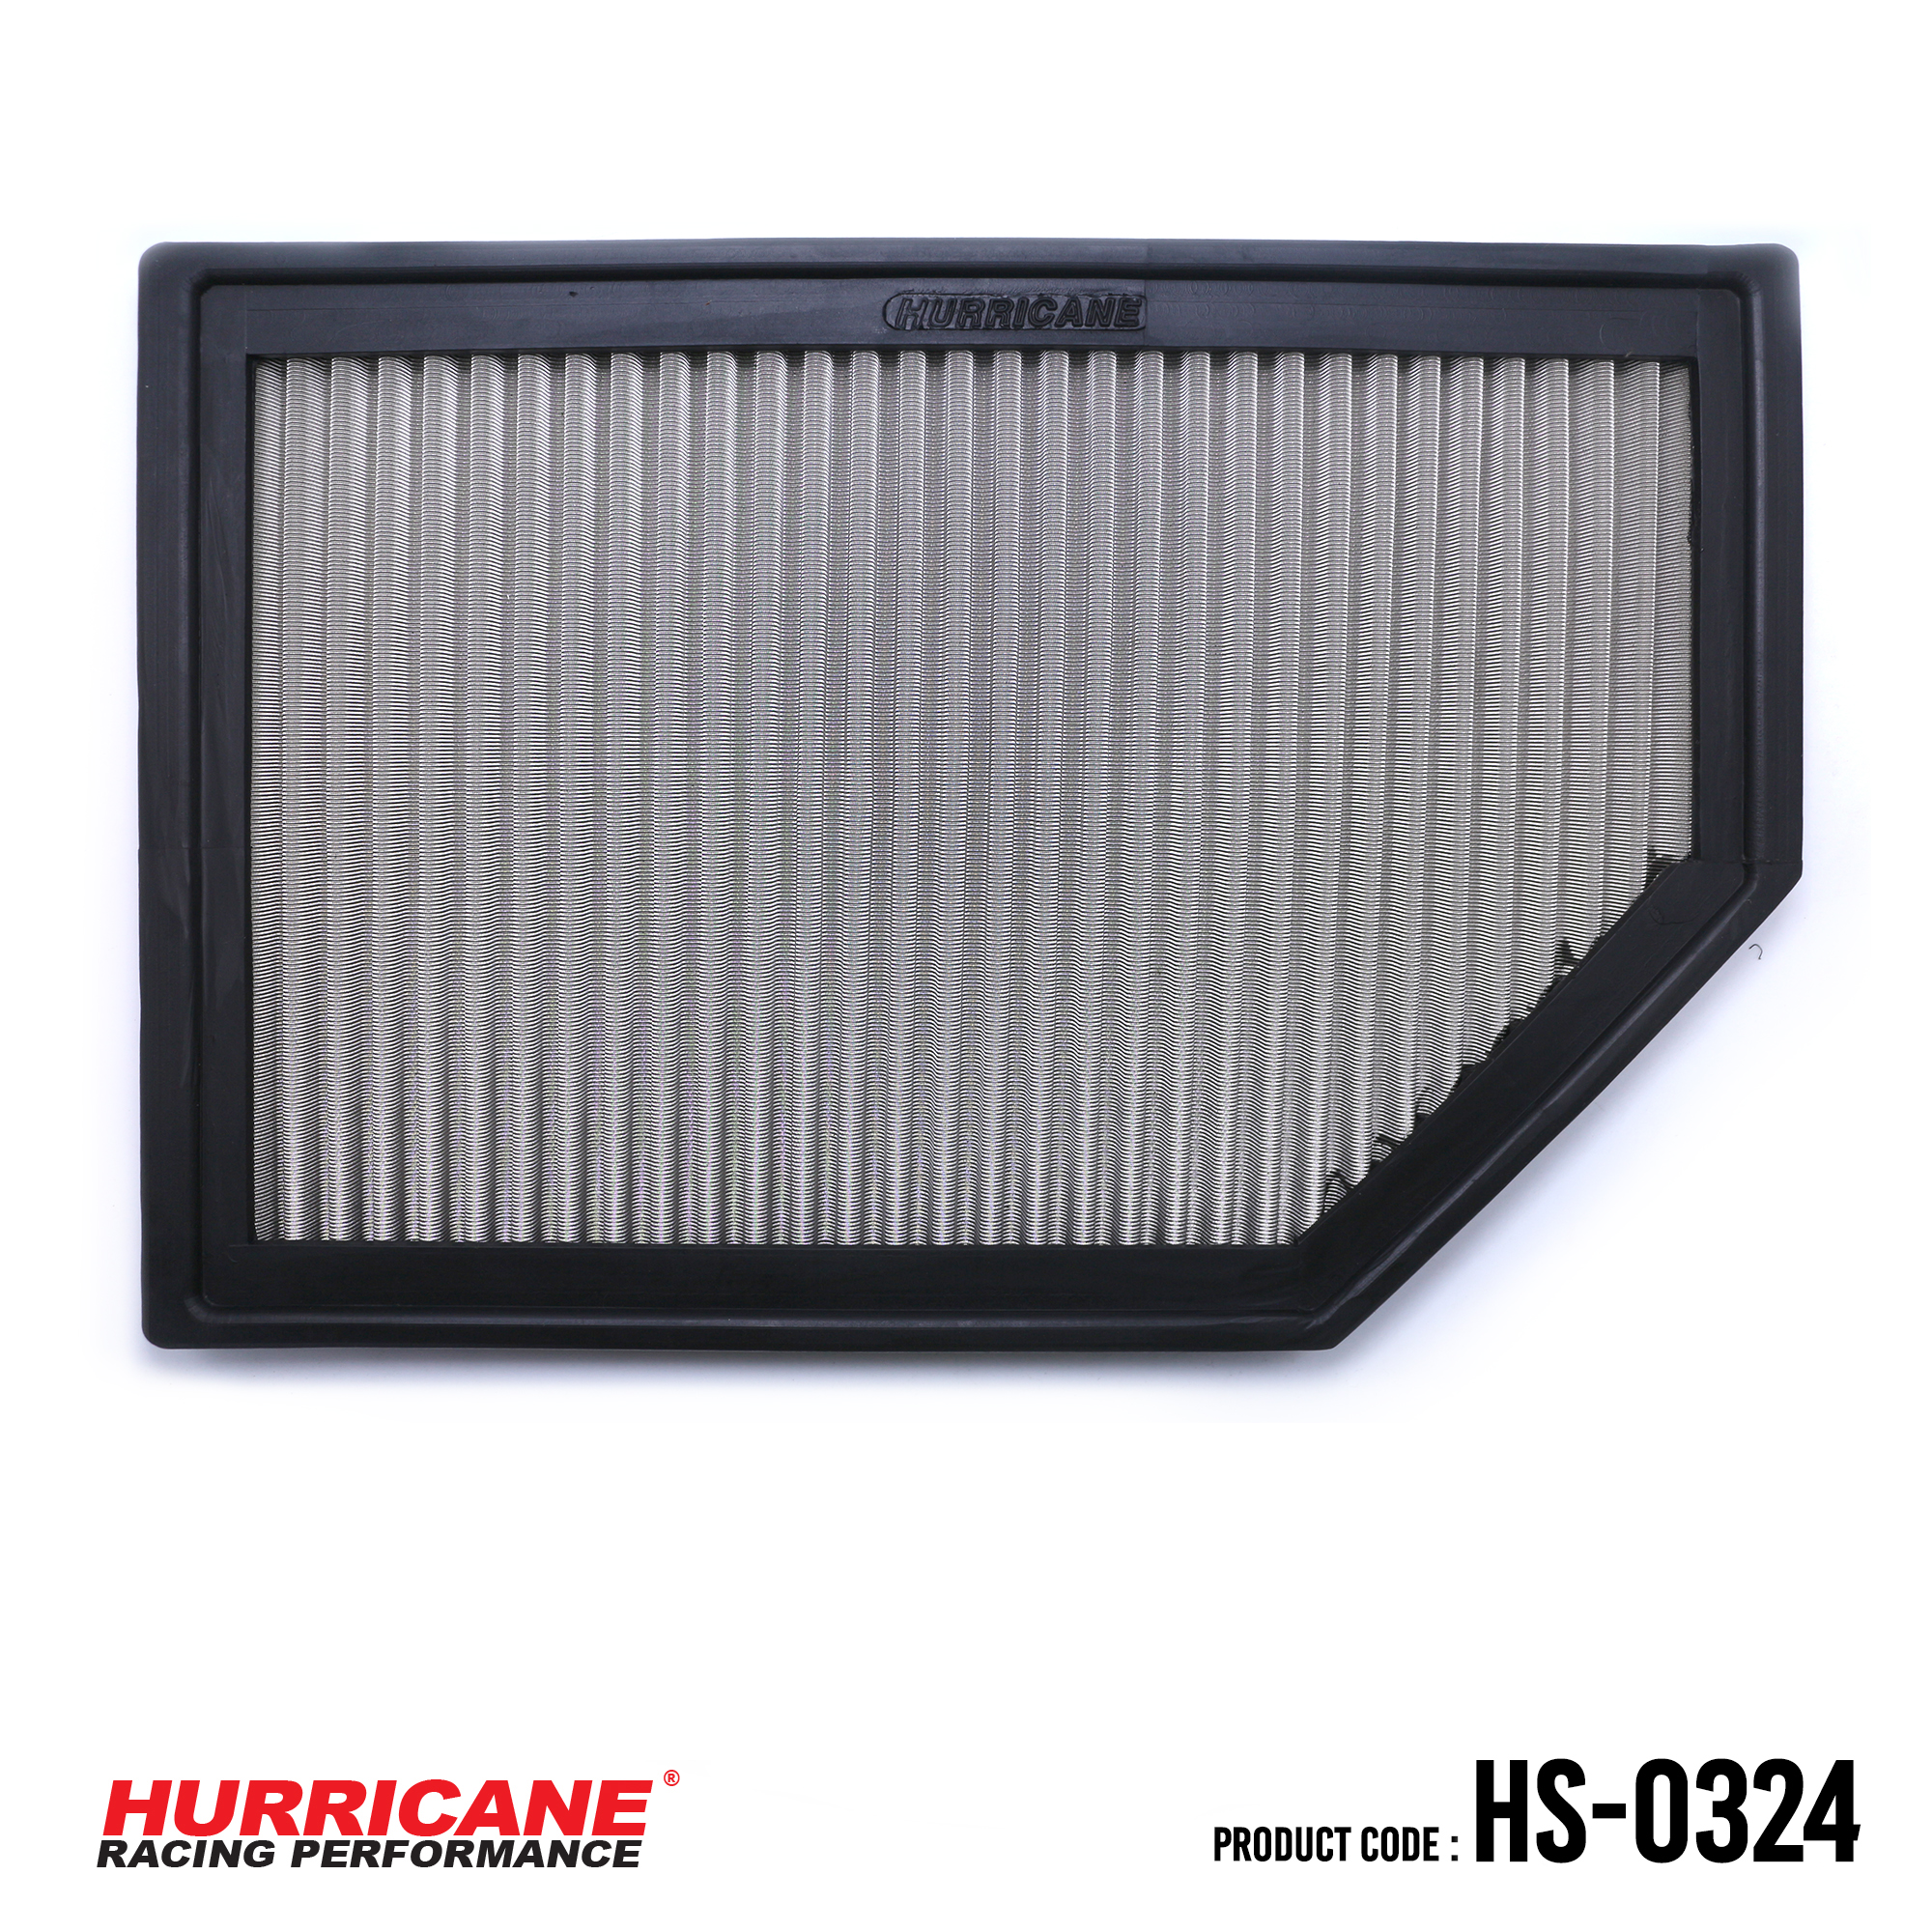 HURRICANE STAINLESS STEEL AIR FILTER FOR HS-0324 Volvo